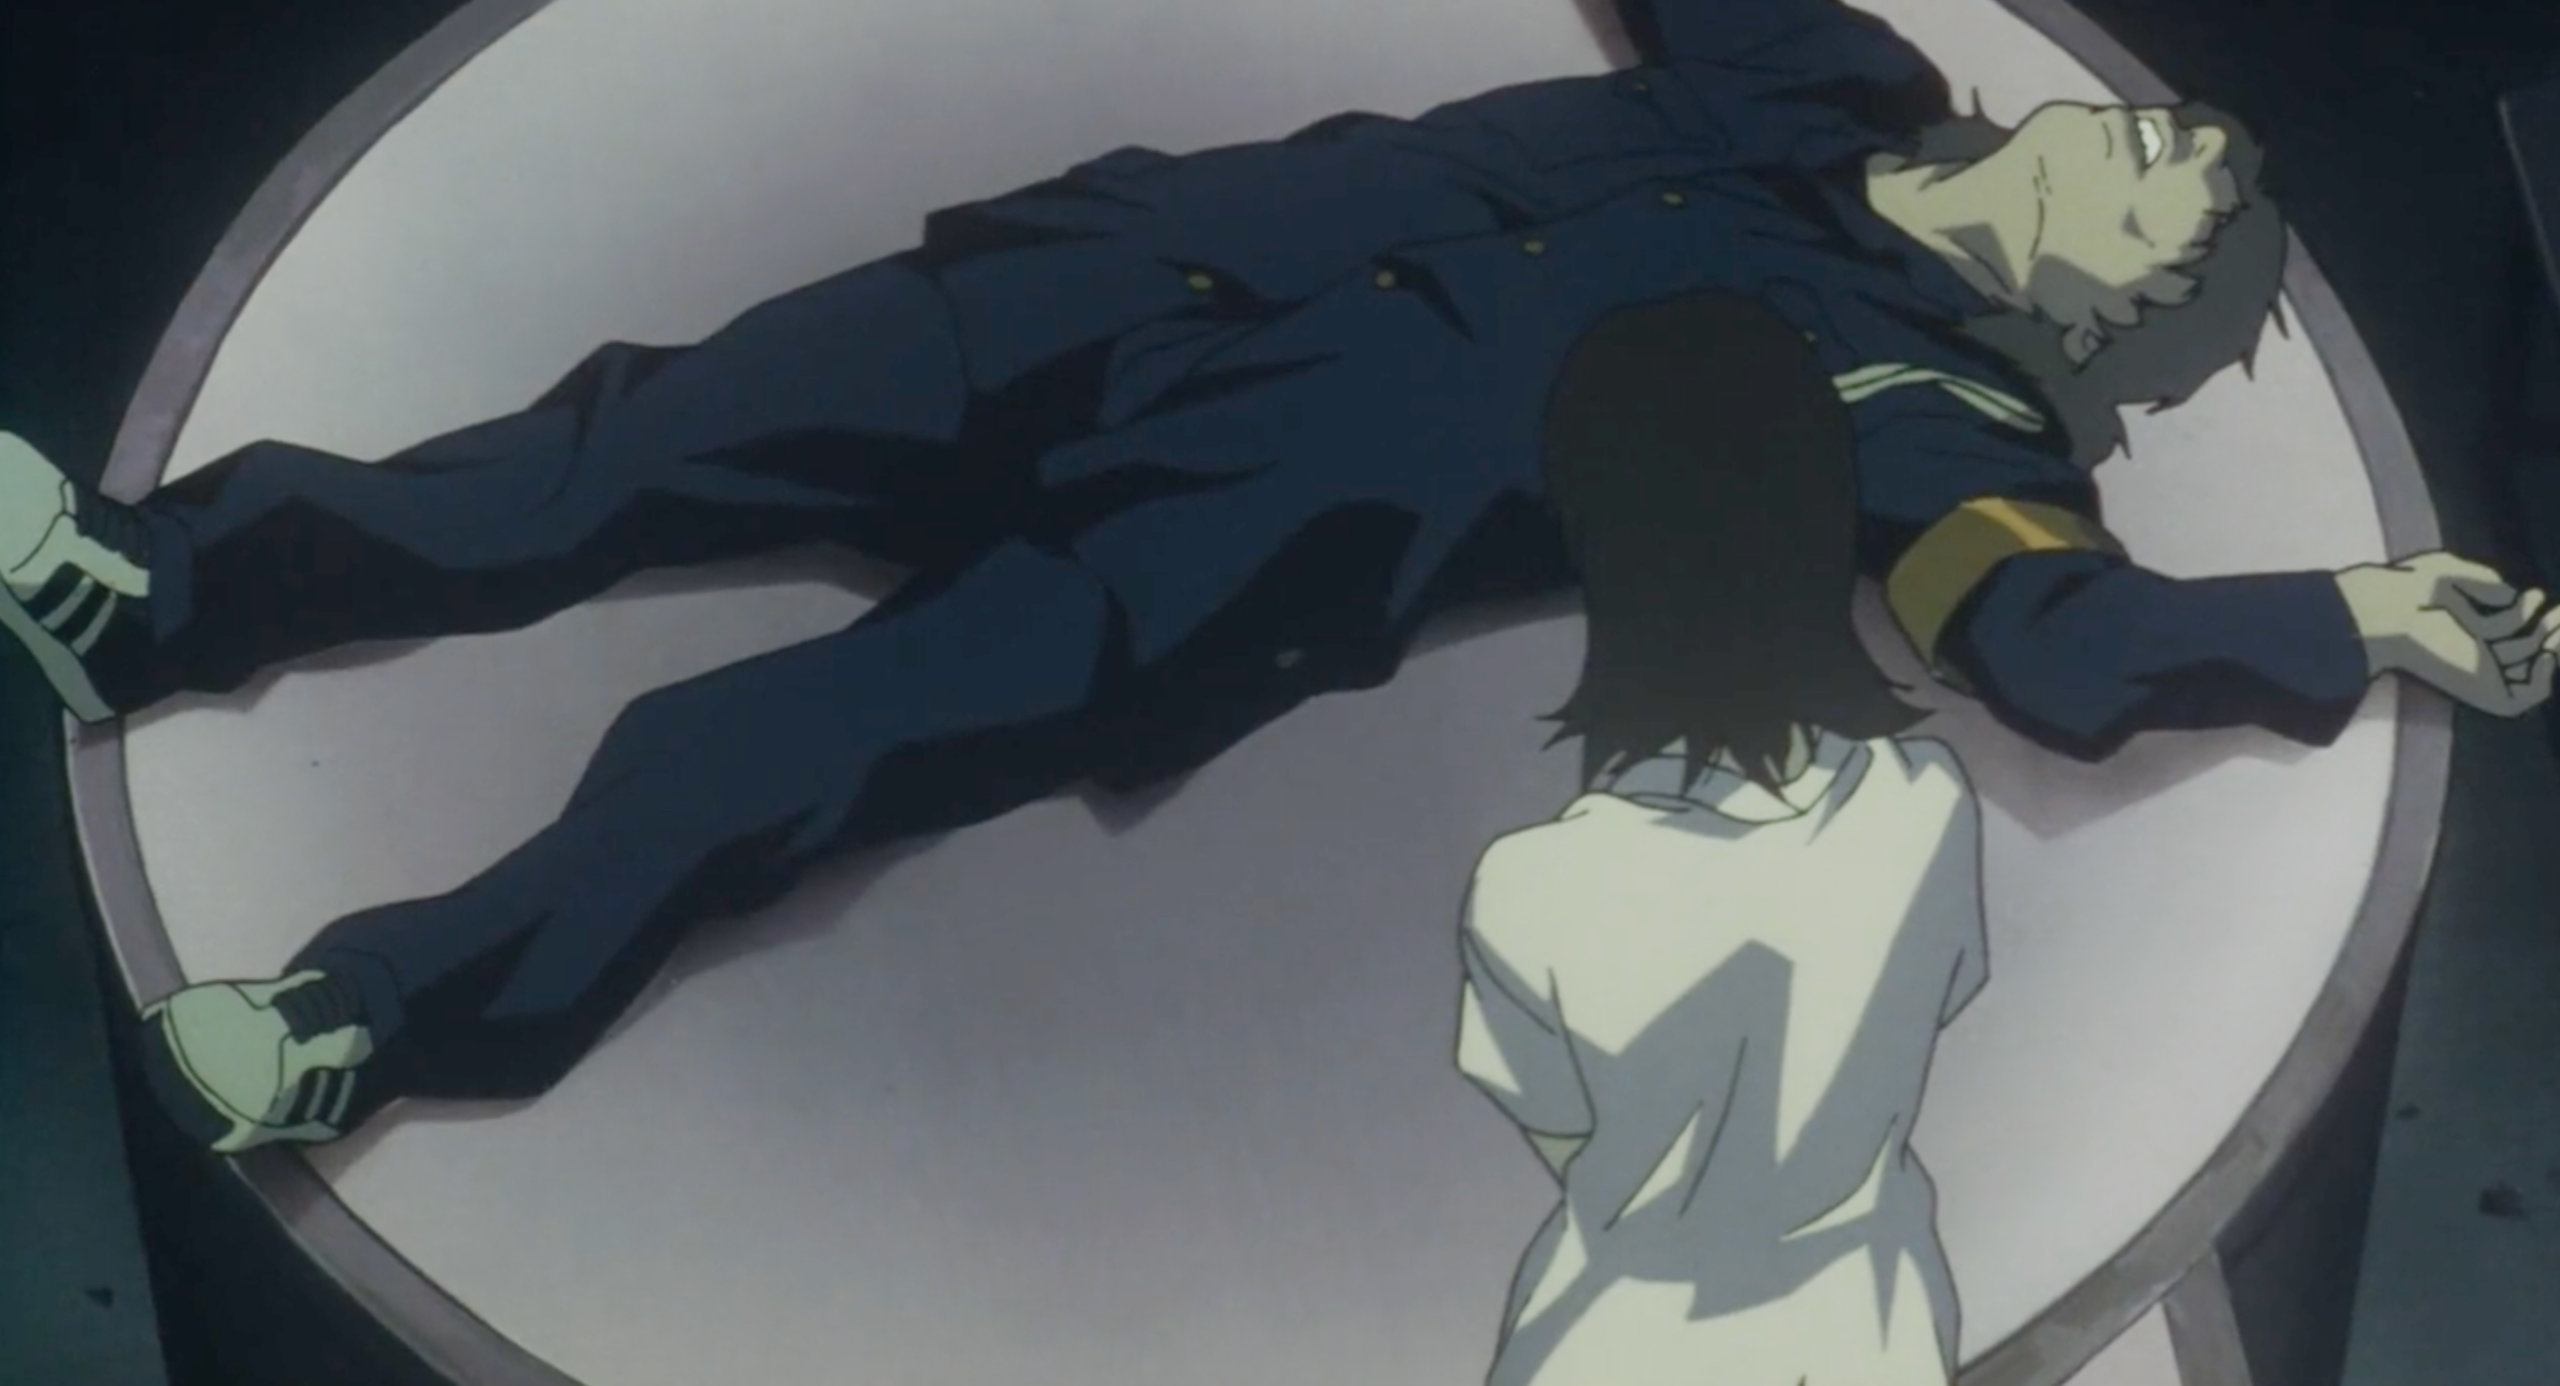 Mima stands over the body of Me-Mania after murdering him in in Perfect Blue